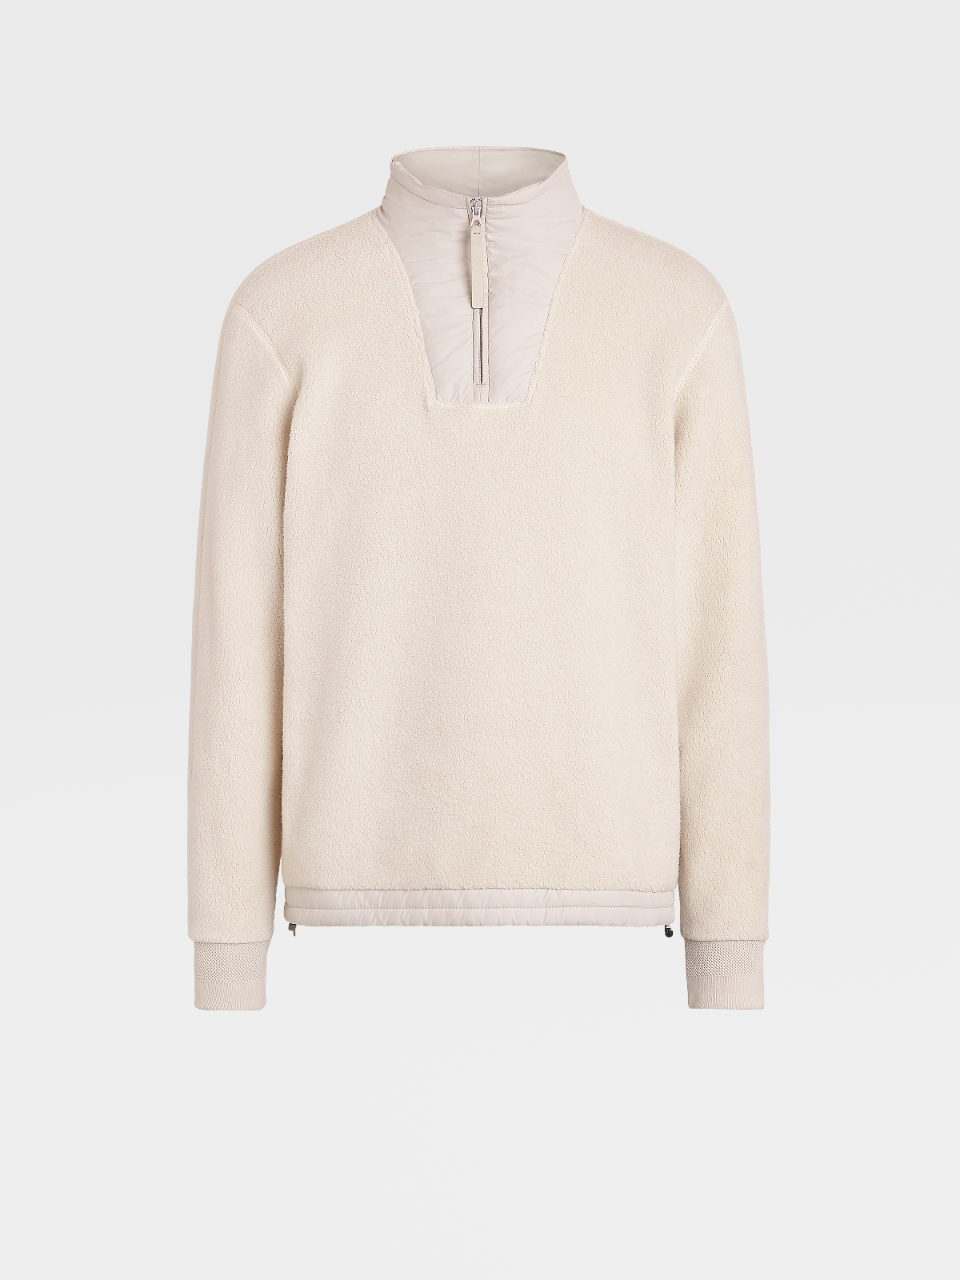 Cotton And Cashmere Sweatshirt